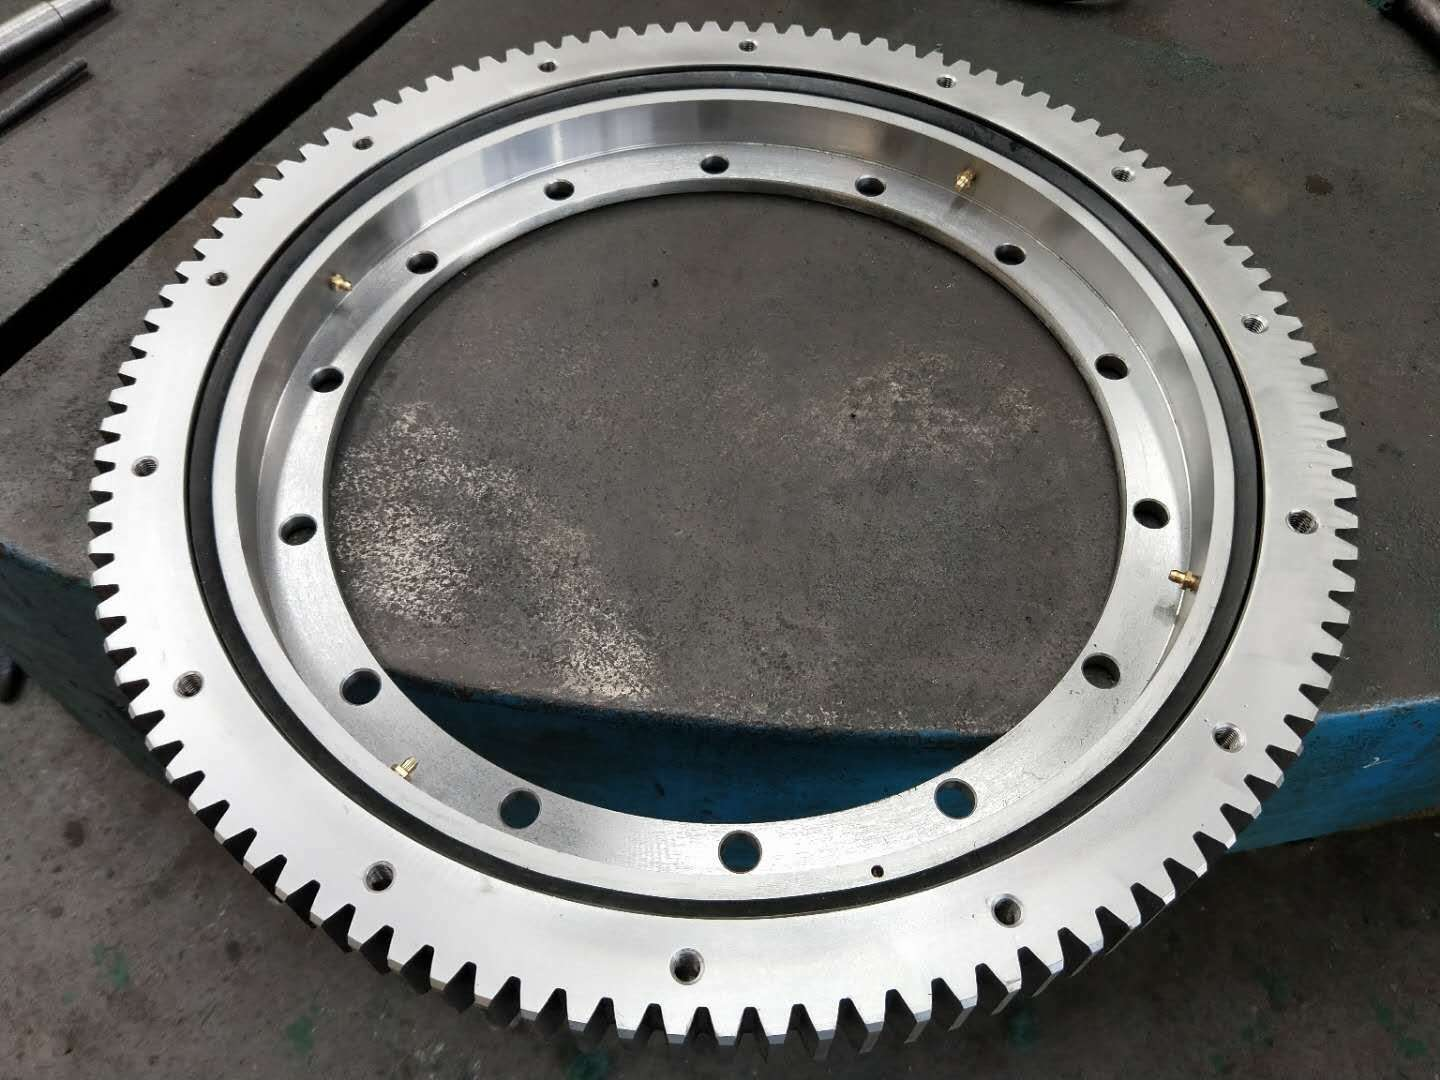 Rothe Erde External gear 50Mn slewing bearing of 231.20.0500.013 slewing ring in stock